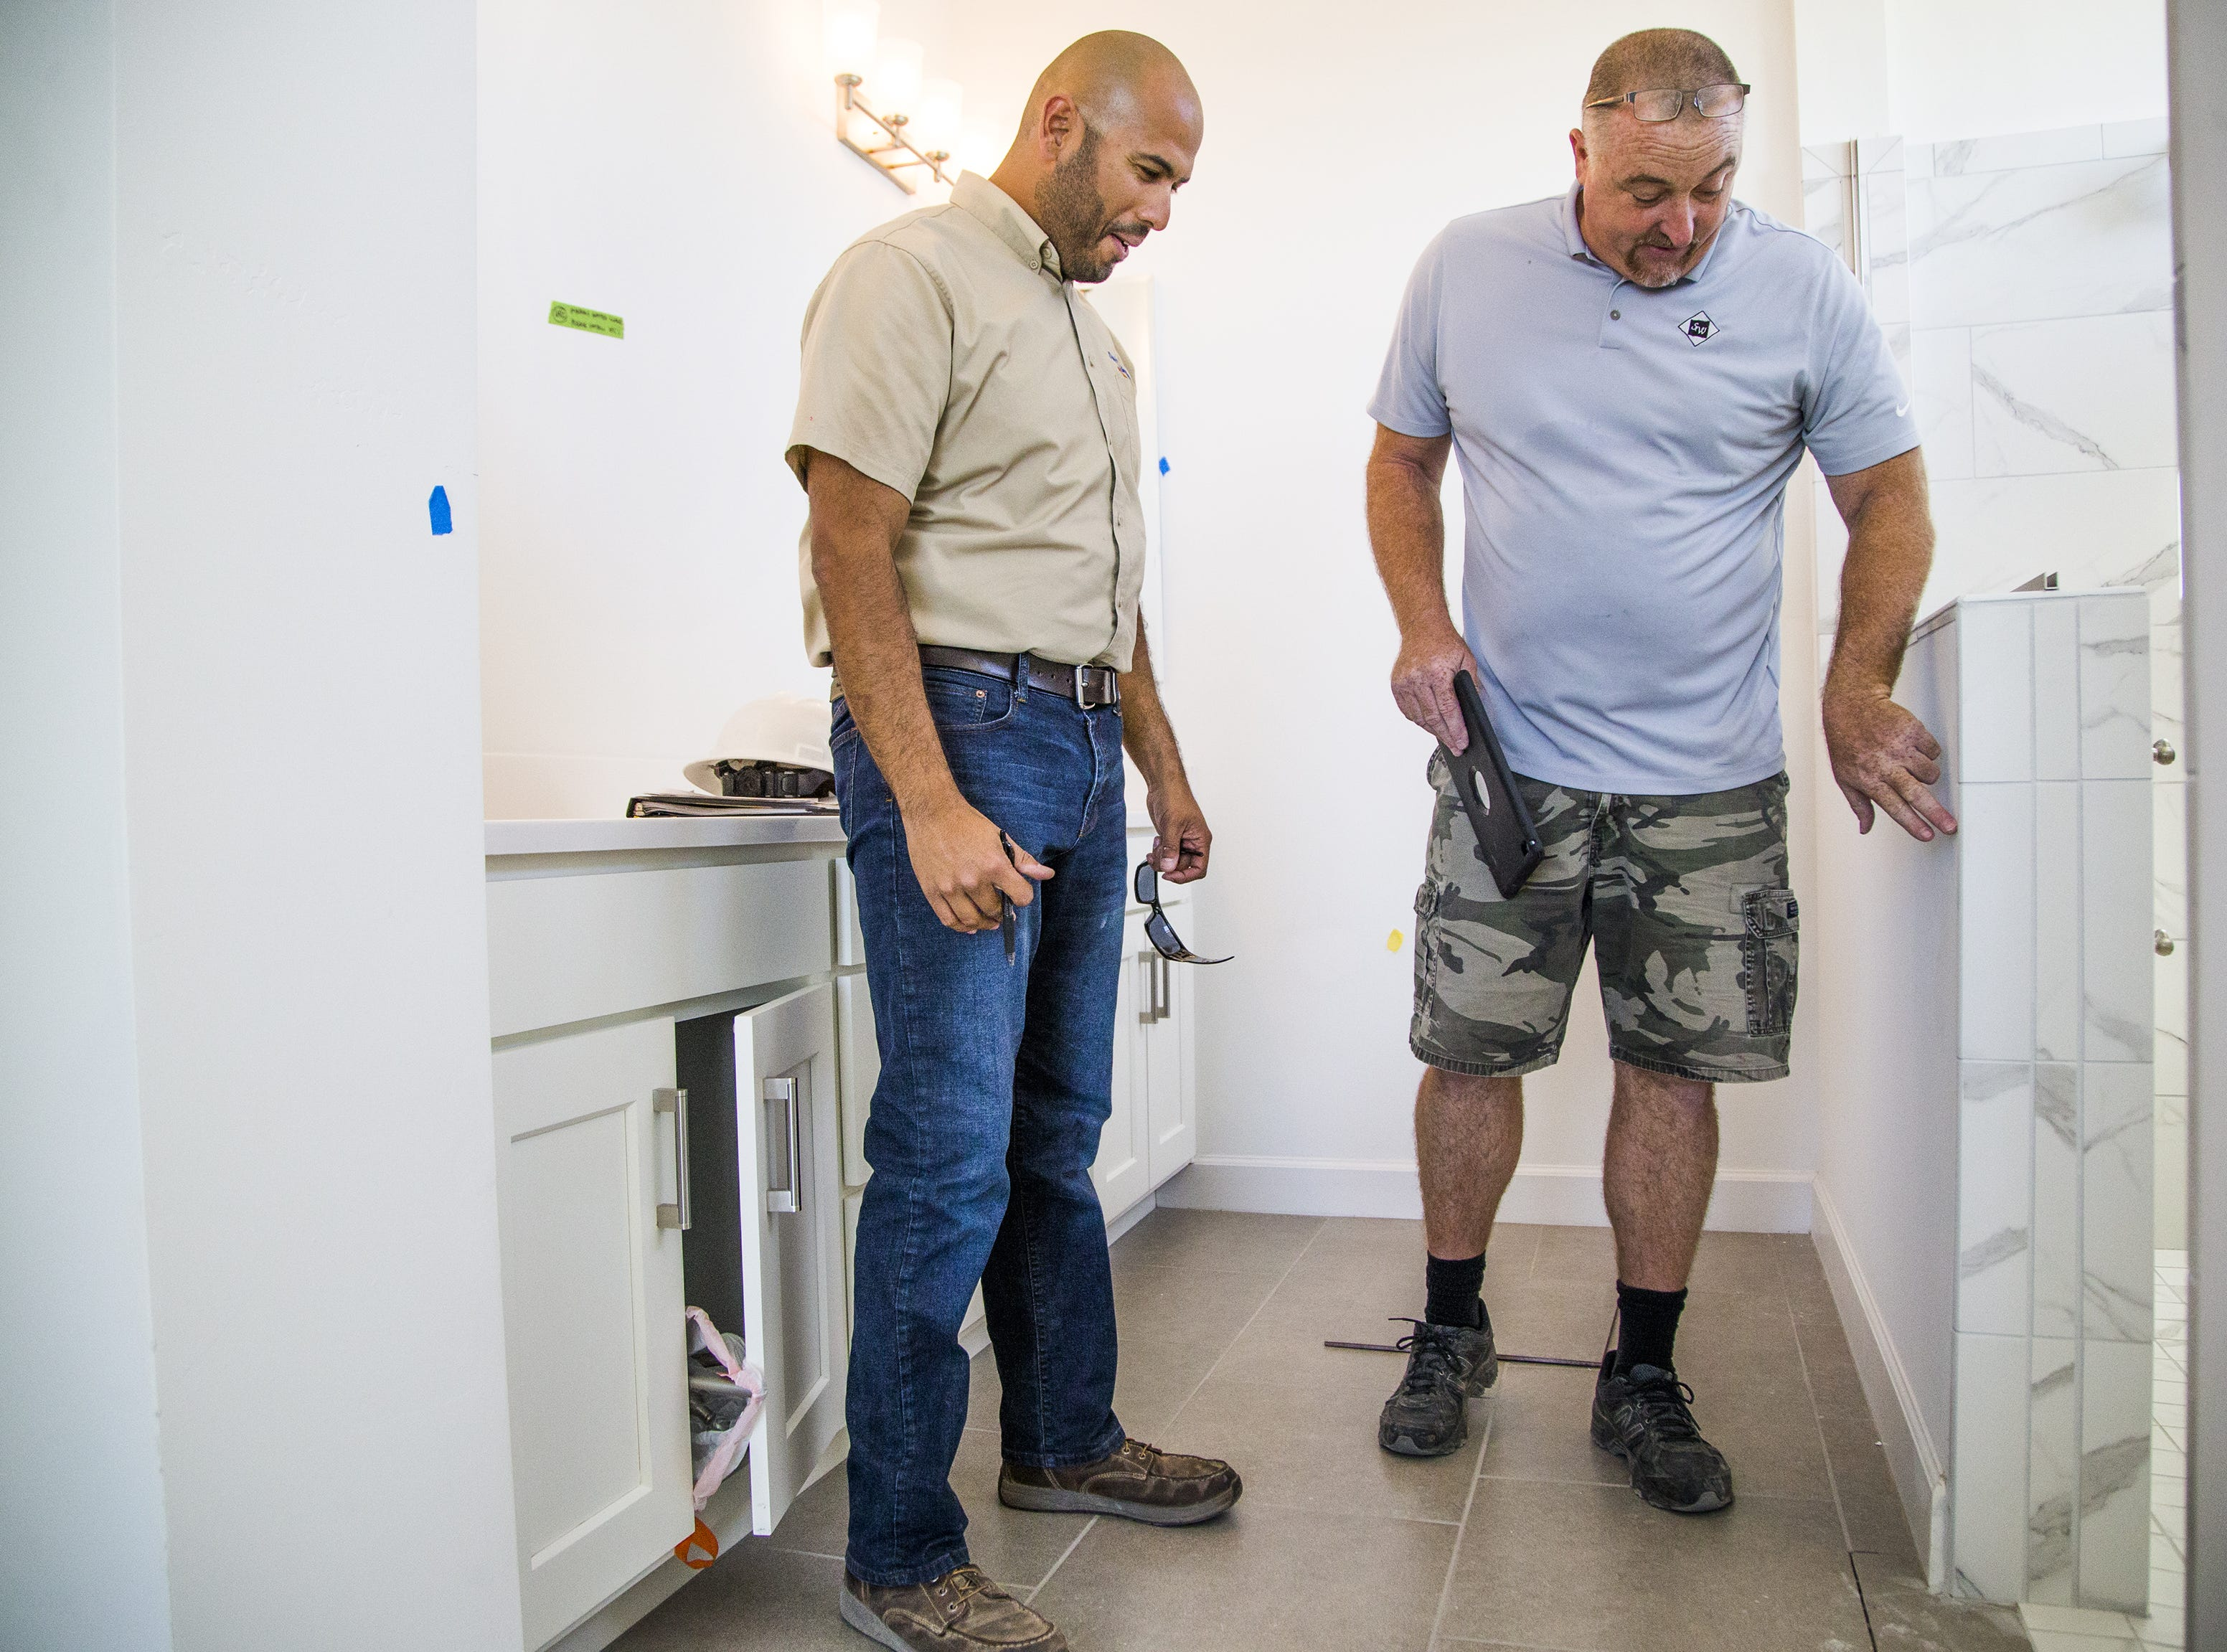 Rudy Del Rio, left, a builder with David Weekley Homes, speaks with Drew Anderson of Southwest Residential Interiors inside a bathroom of a home under construction in the Verrado development in Buckeye, Monday, November 5, 2018.